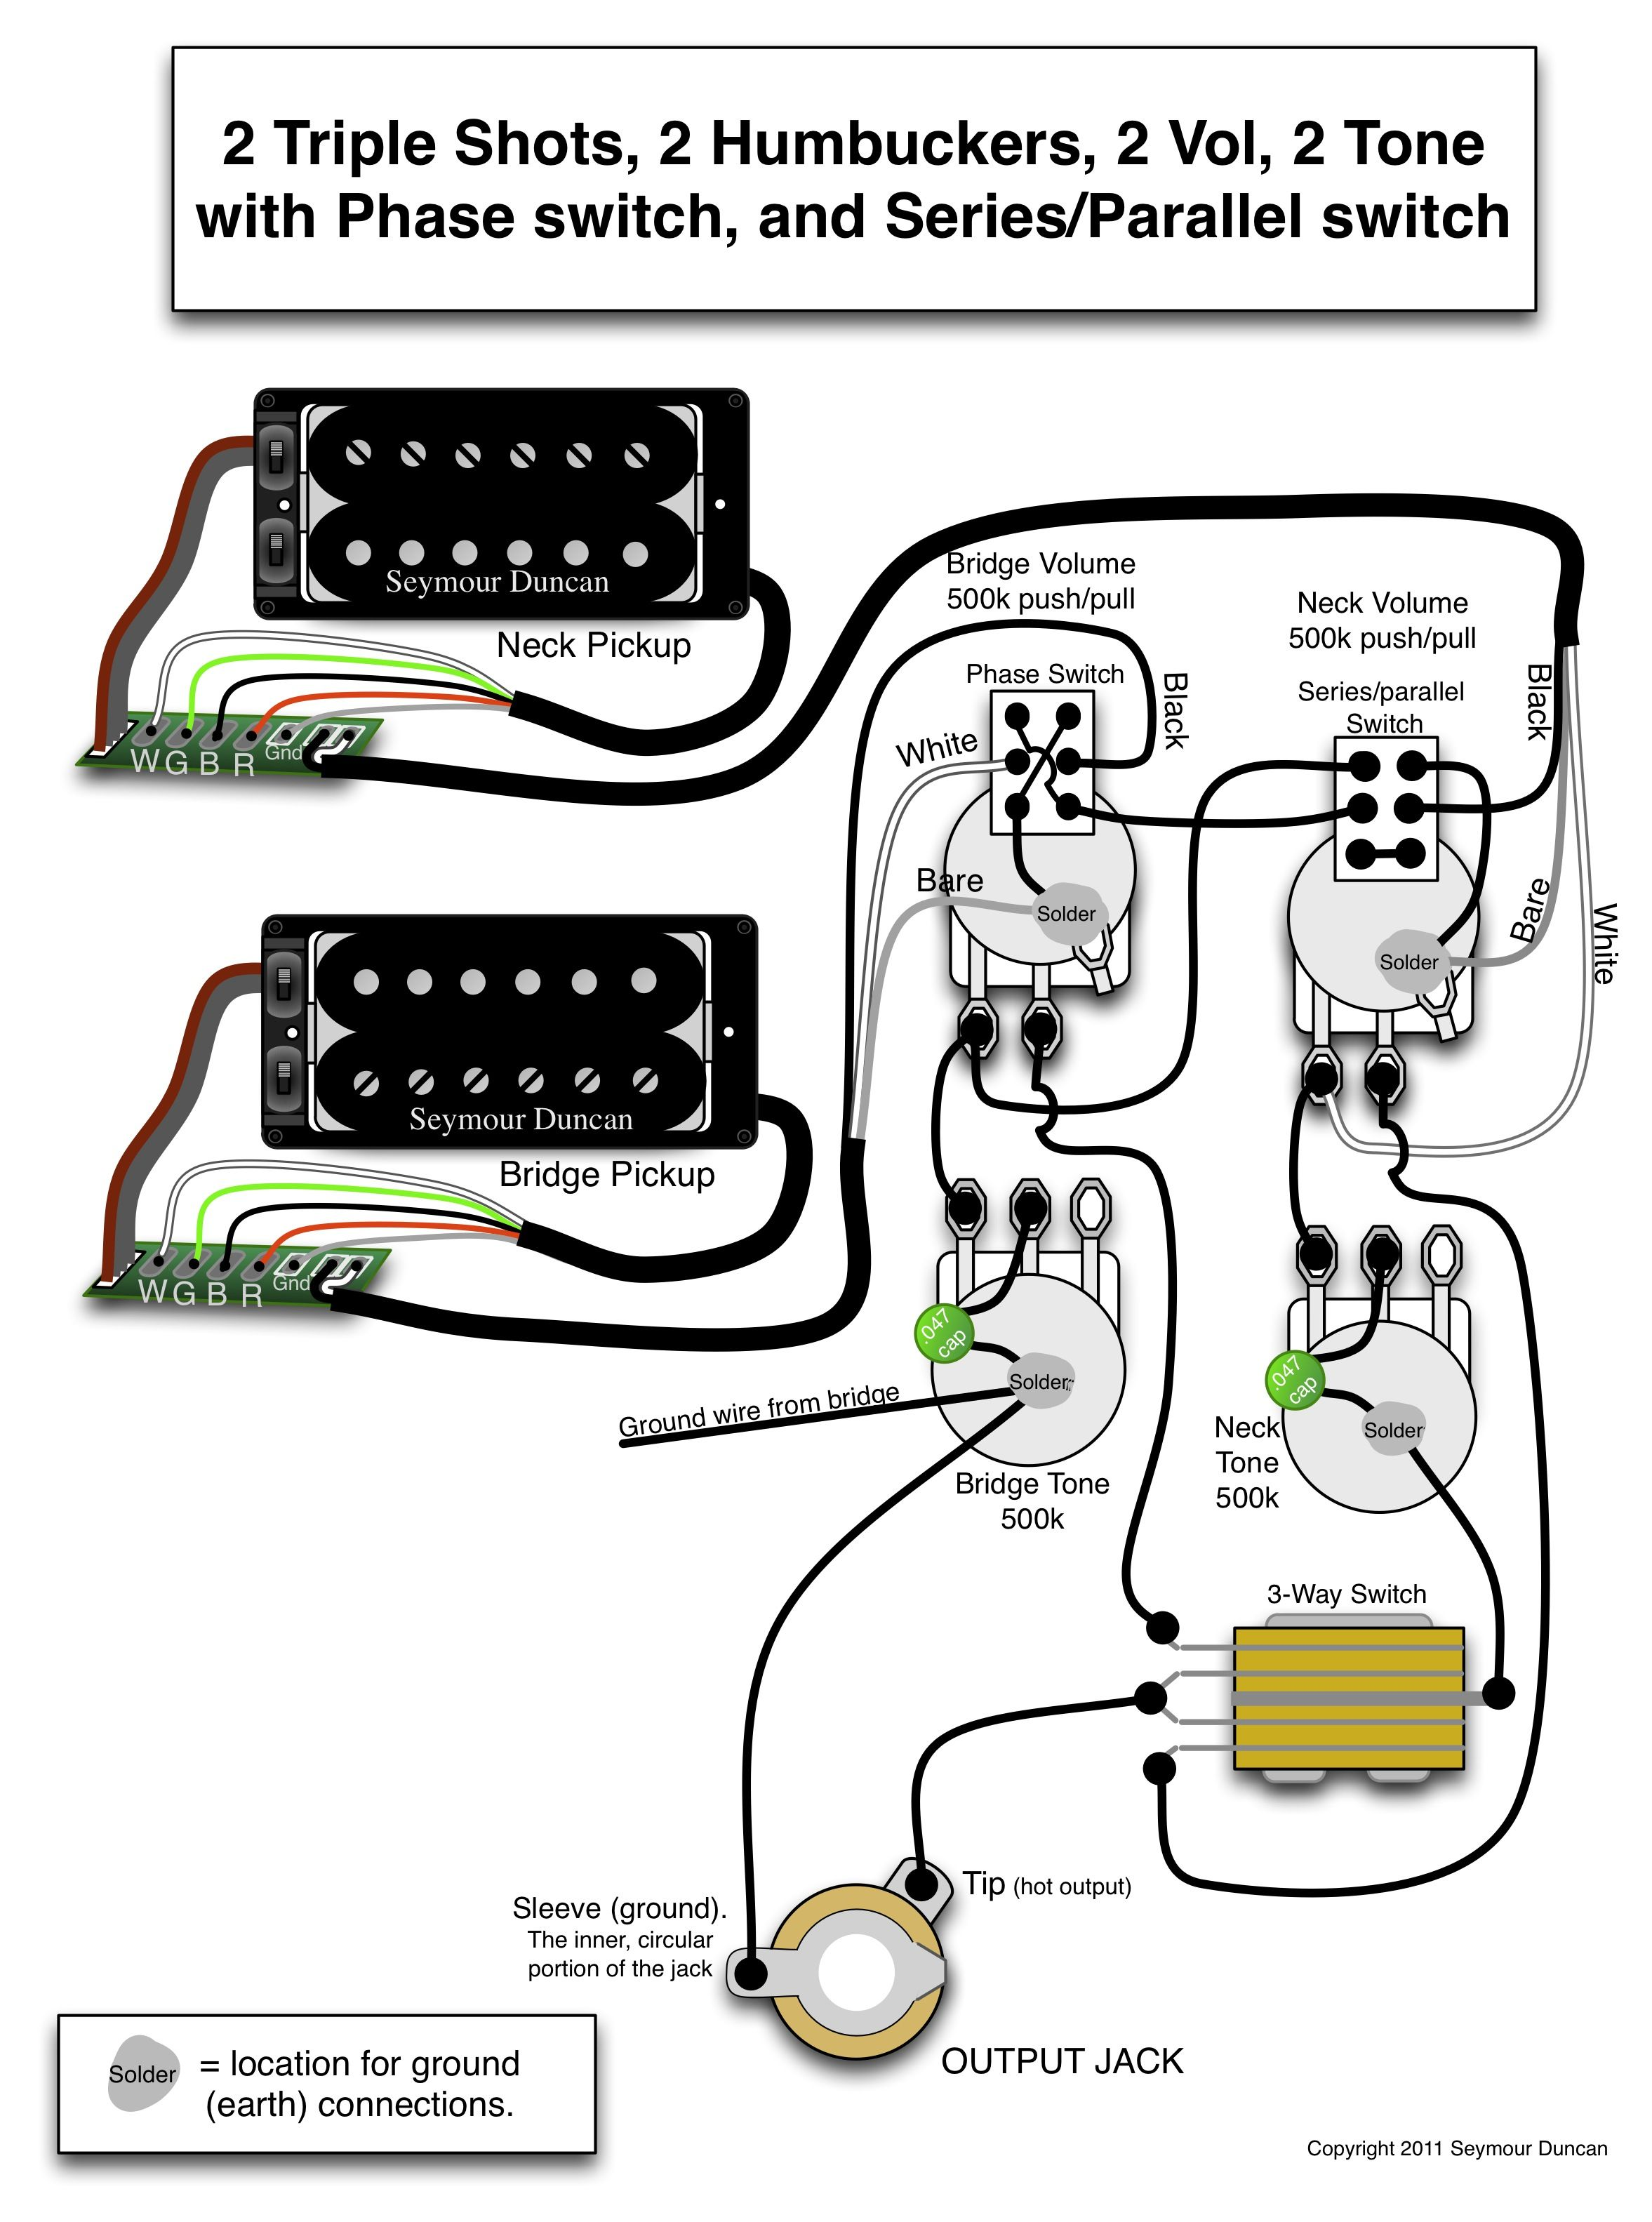 Parallel Wiring Diagrams For Humbuckers